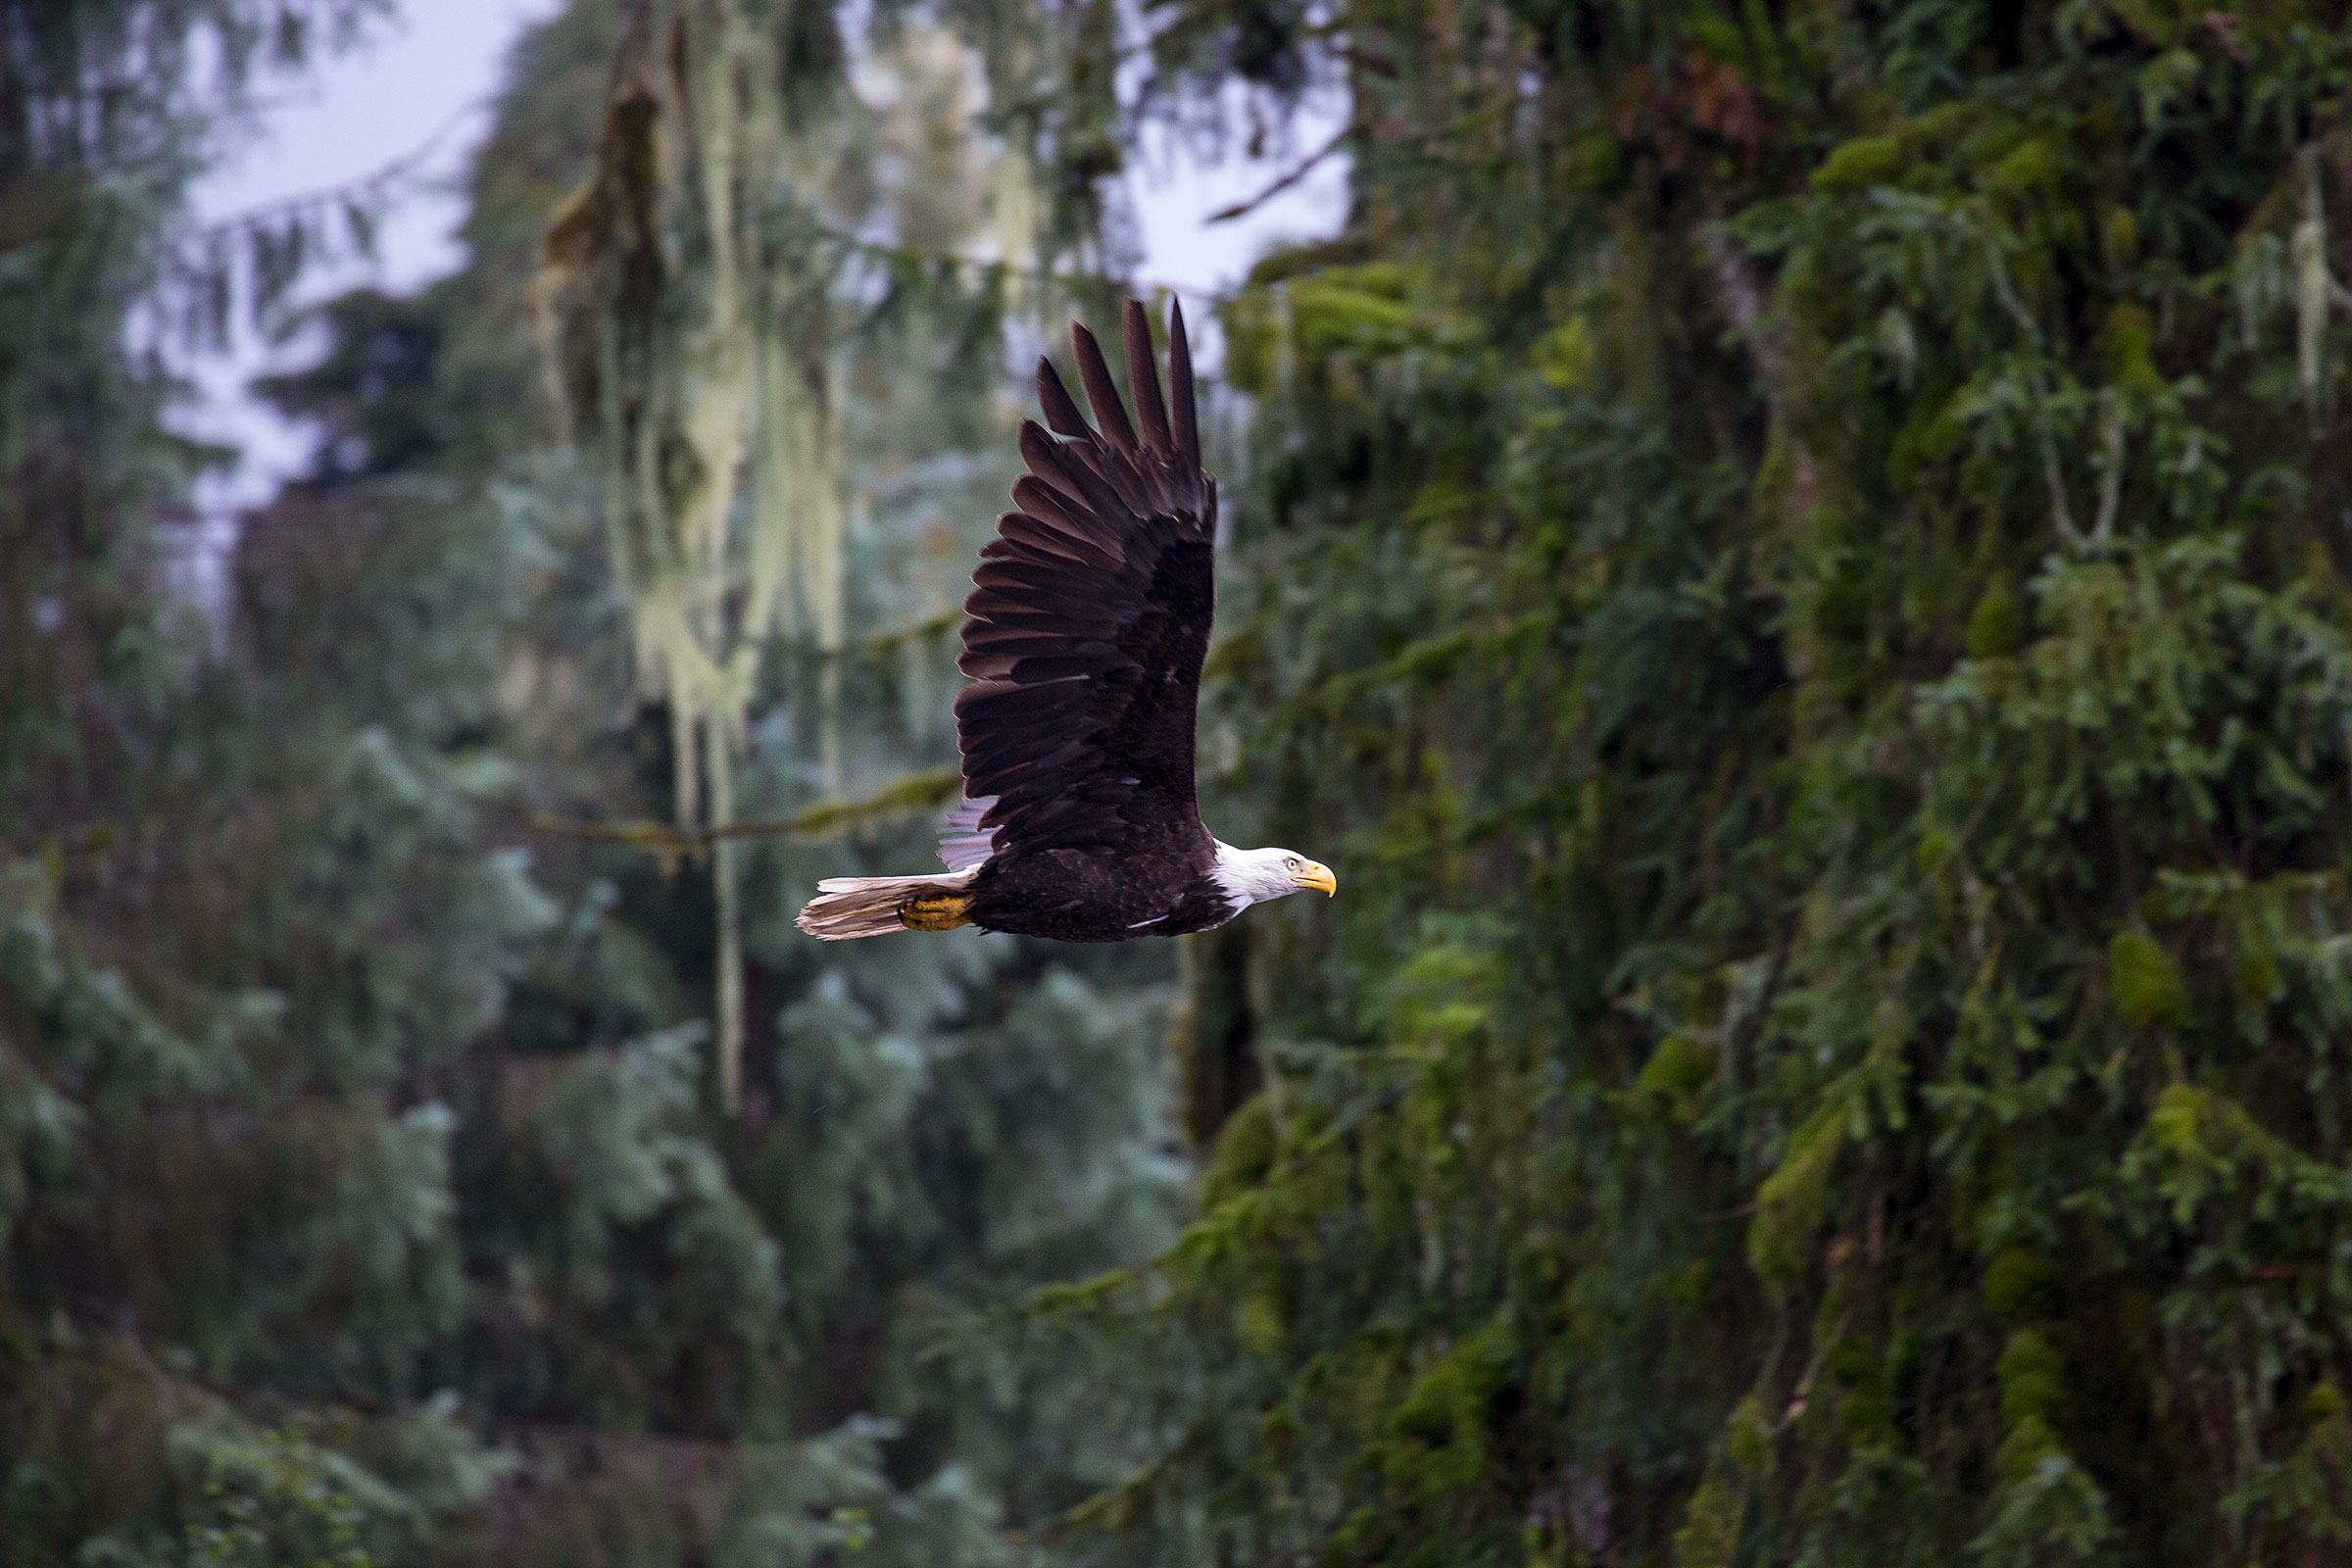 Bald Eagle, Tongass National Forest. Matthias Breiter/Minden Pictures